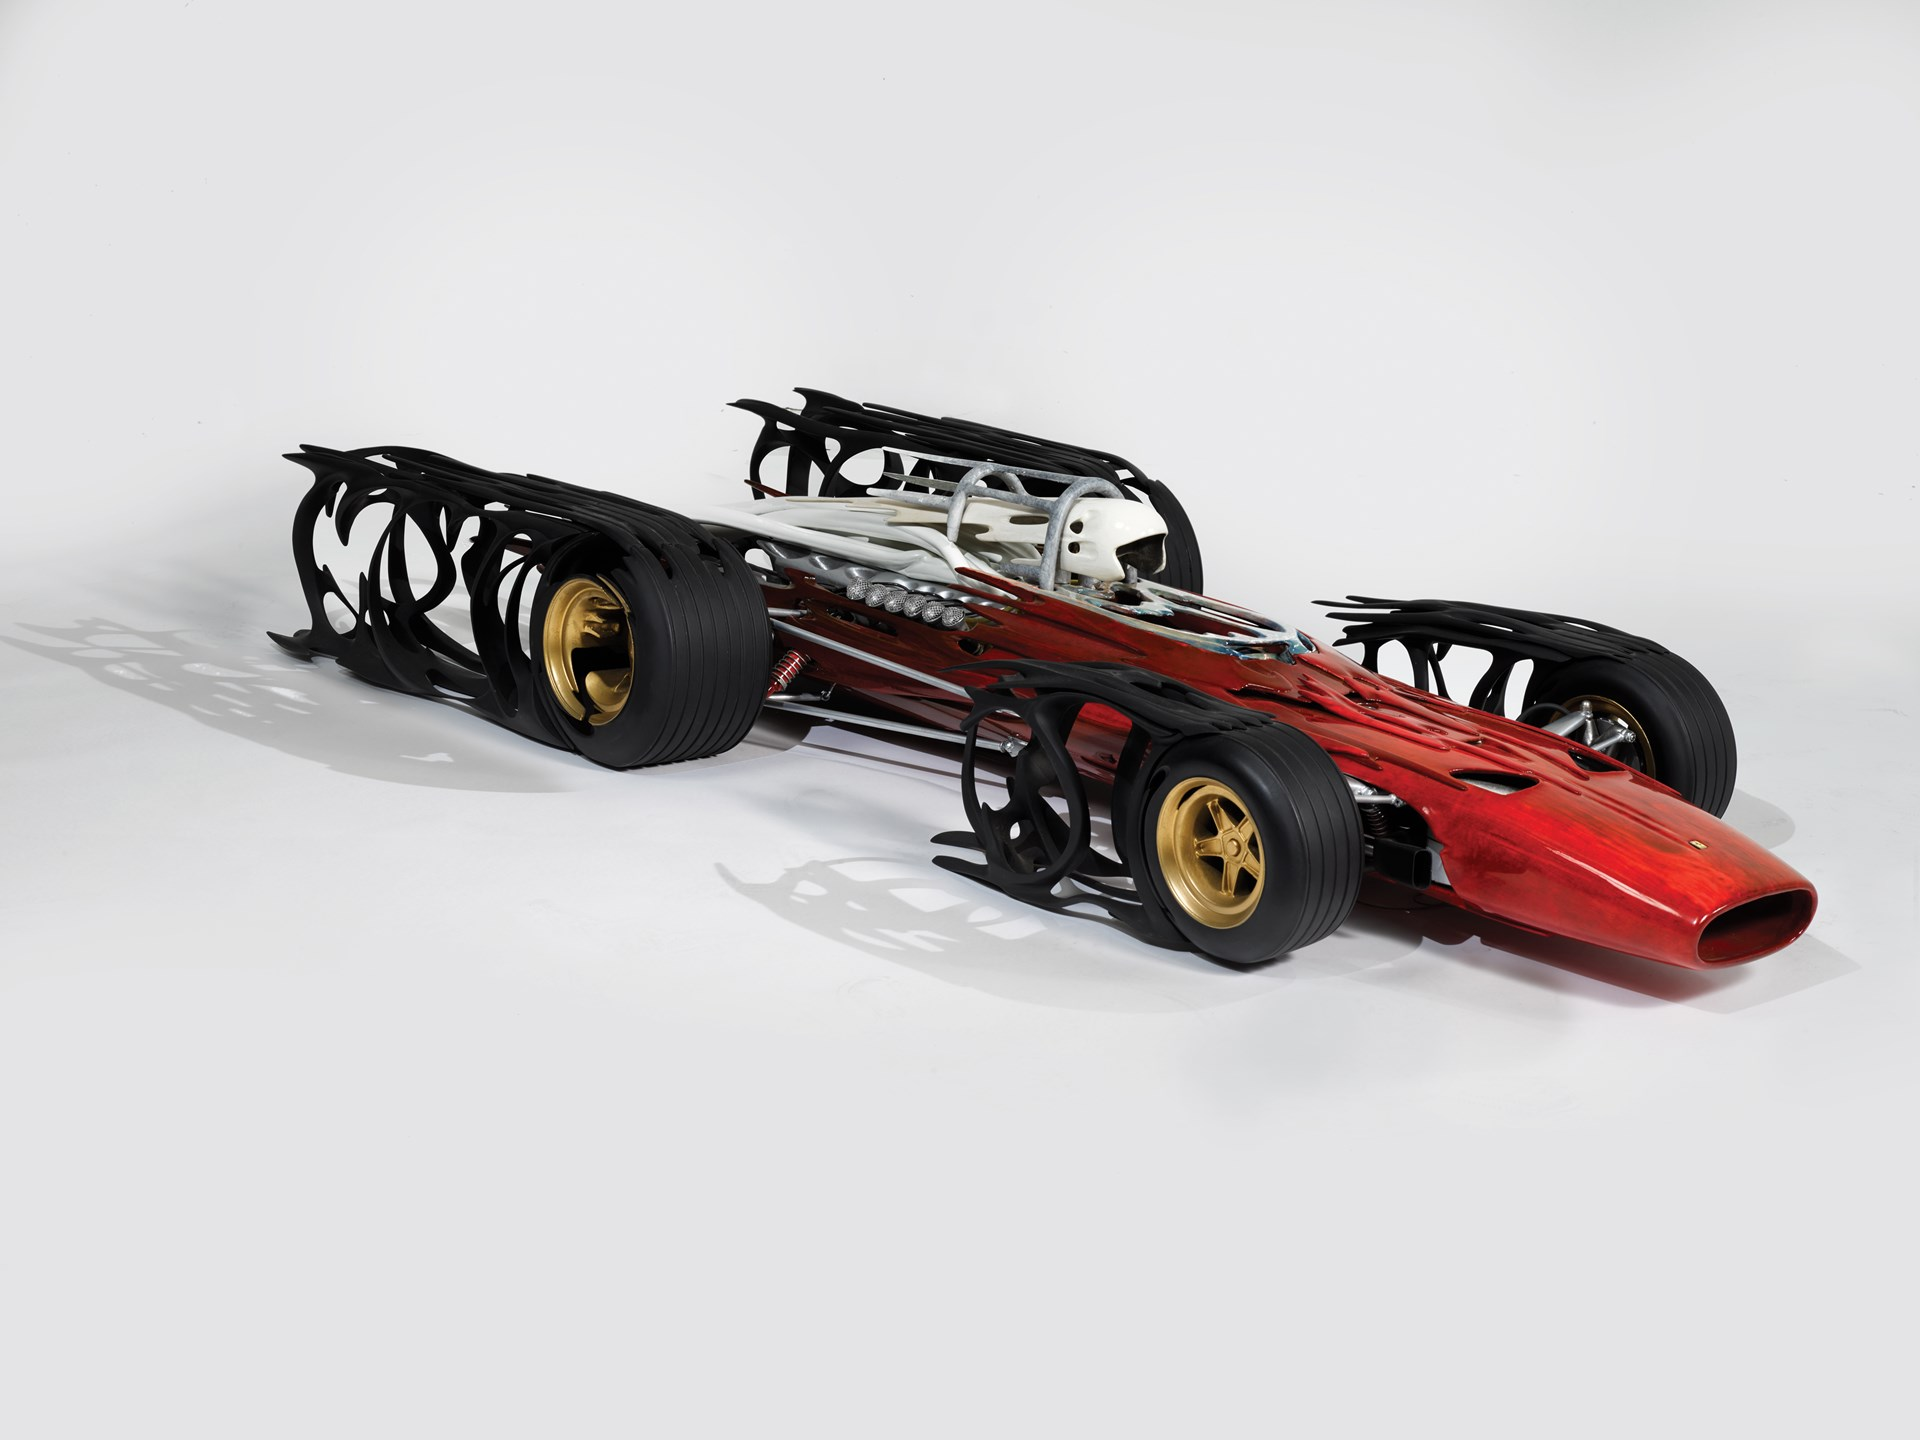 312 Ferrari by Dennis Hoyt, 2003